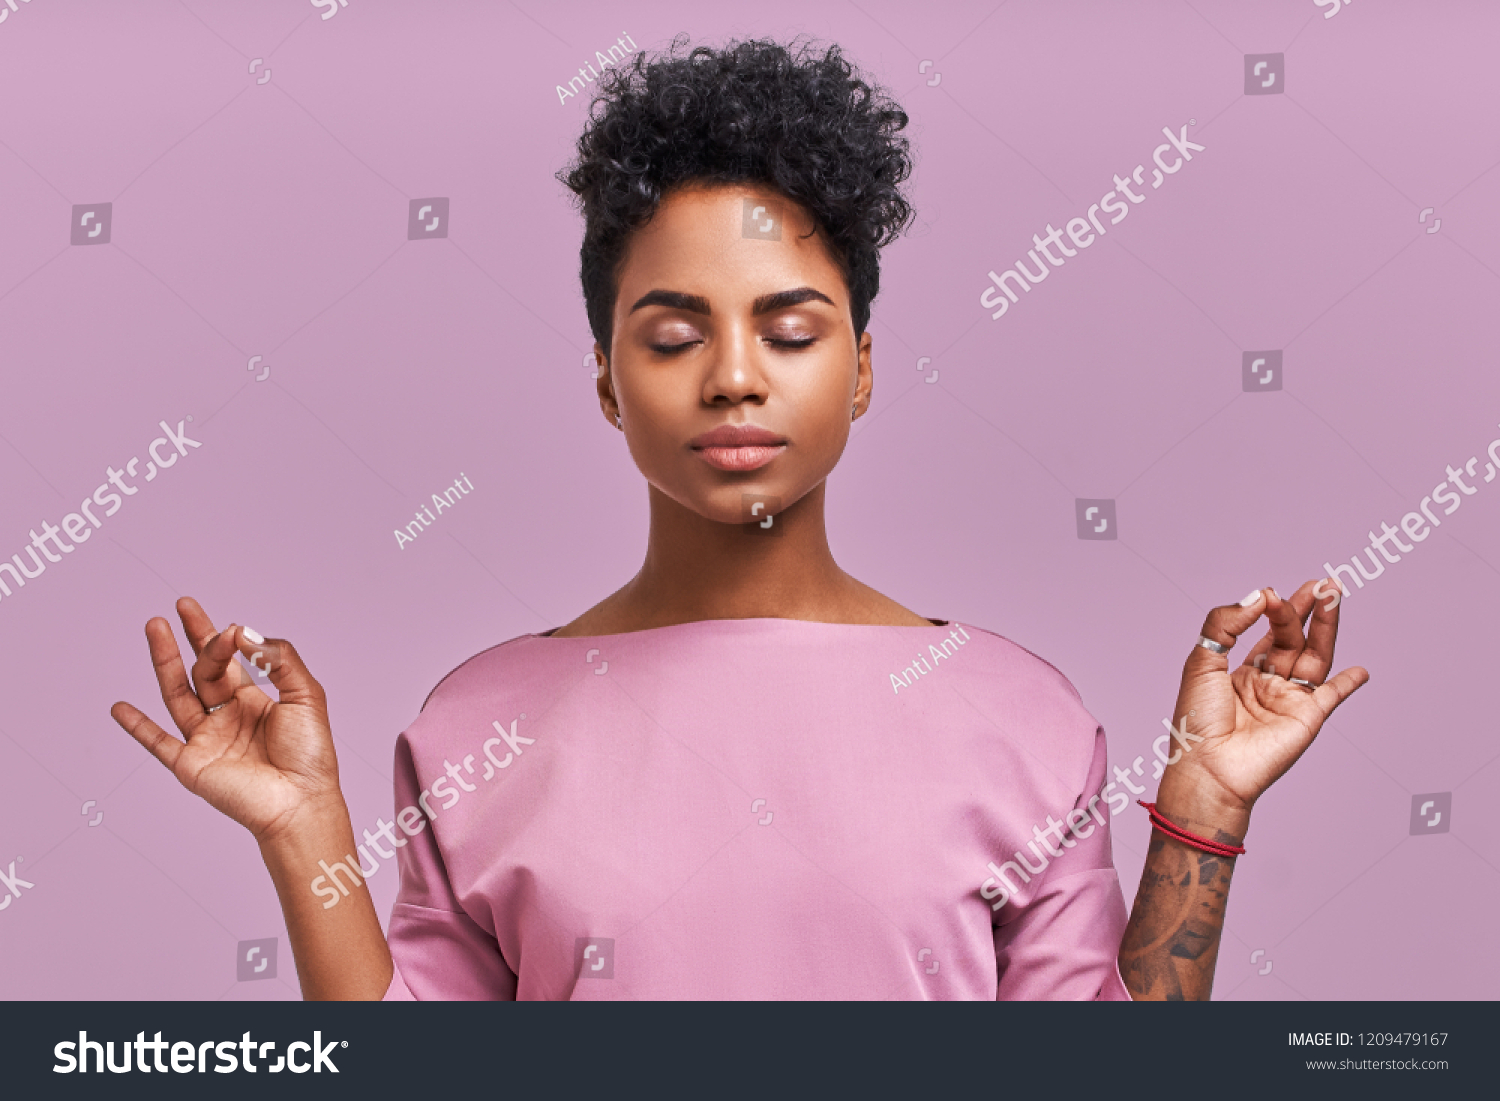 Calm woman relaxing meditating, no stress free relief at work concept, mindful peaceful young businesswoman or student practicing breathing yoga exercises on isolated over lavender background #1209479167